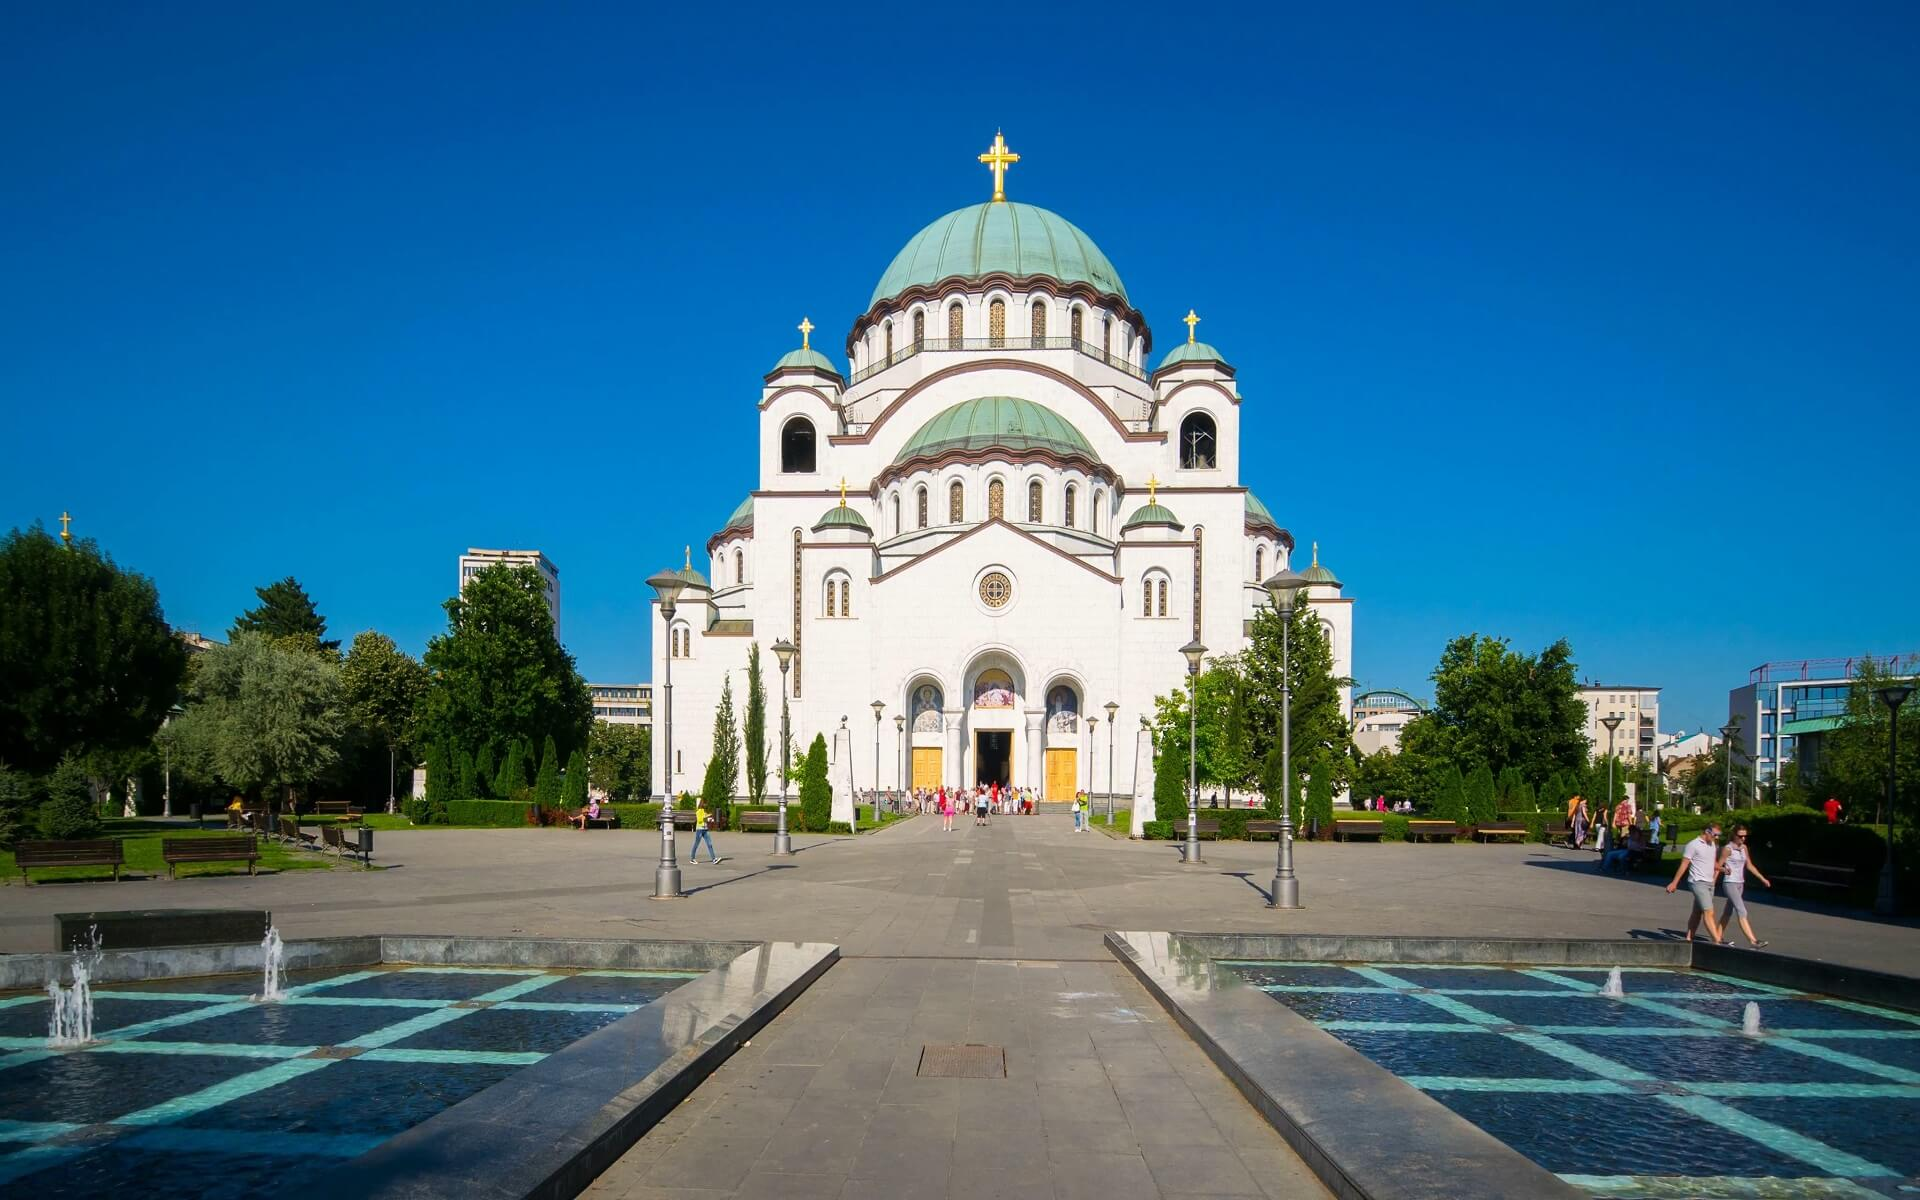 BELGRADE - One of the most culturally vibrant cities in Europe